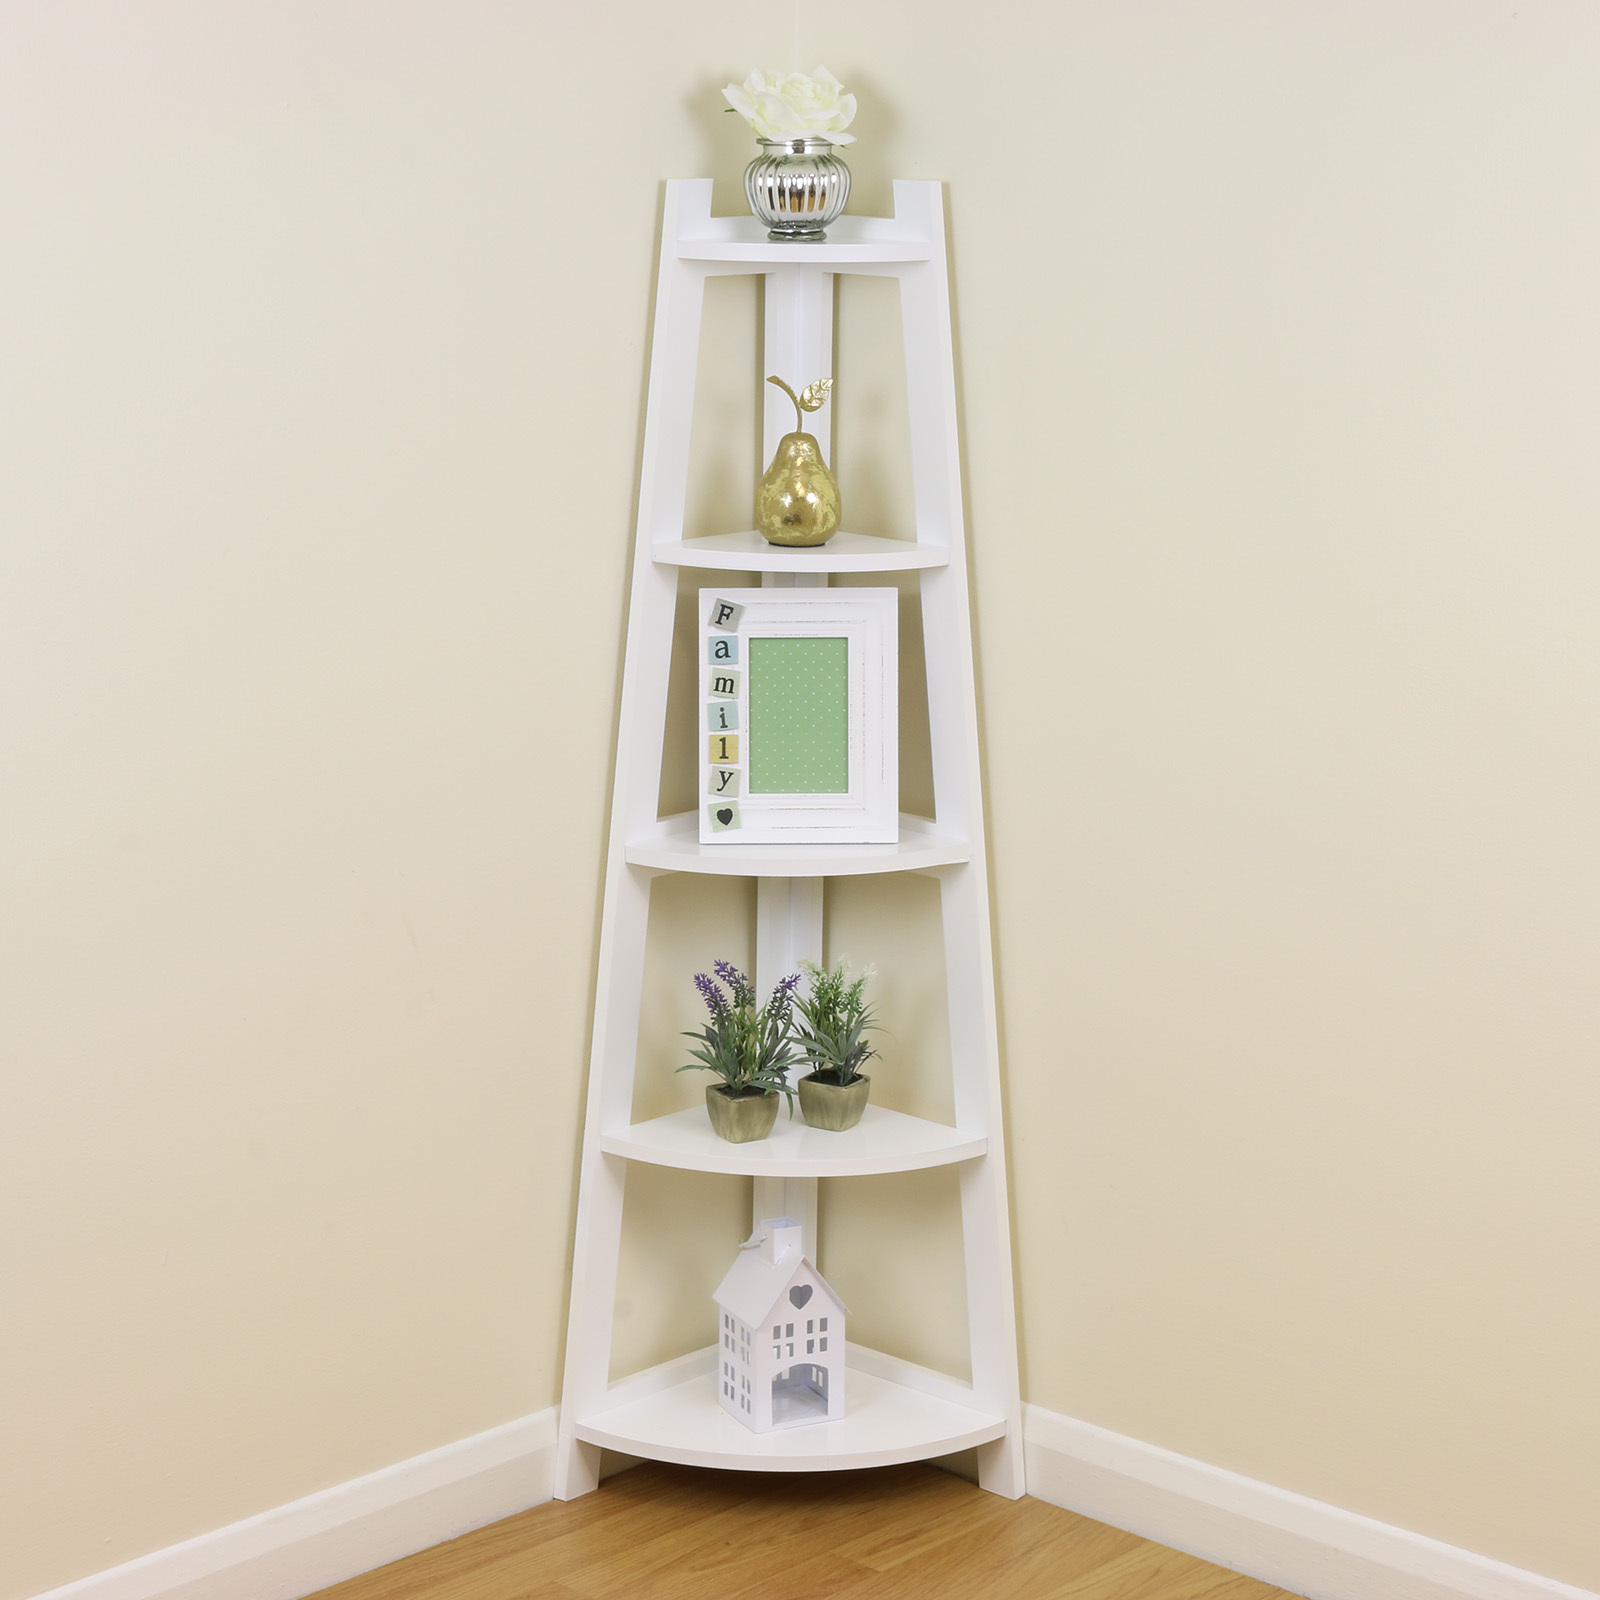 Full Bathroom Ideas White 5 Tier Corner Shelf Shelving Unit Stand Home